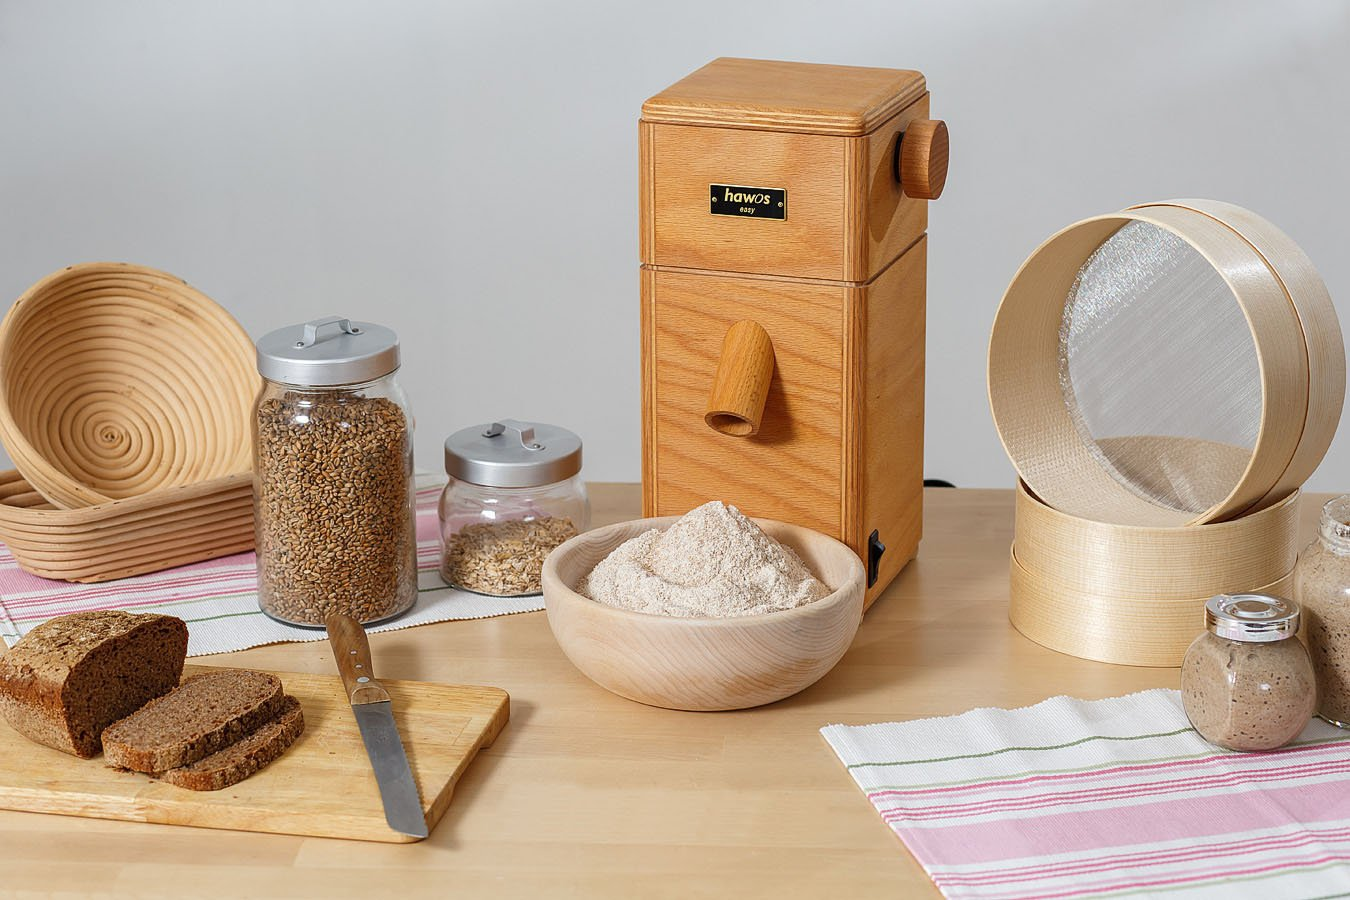 hawos Easy Stone Grain Flour Mill in Wood 110 Volts 360 Watts Grinding Rate 4 oz / min by Happy Mills (Image #4)